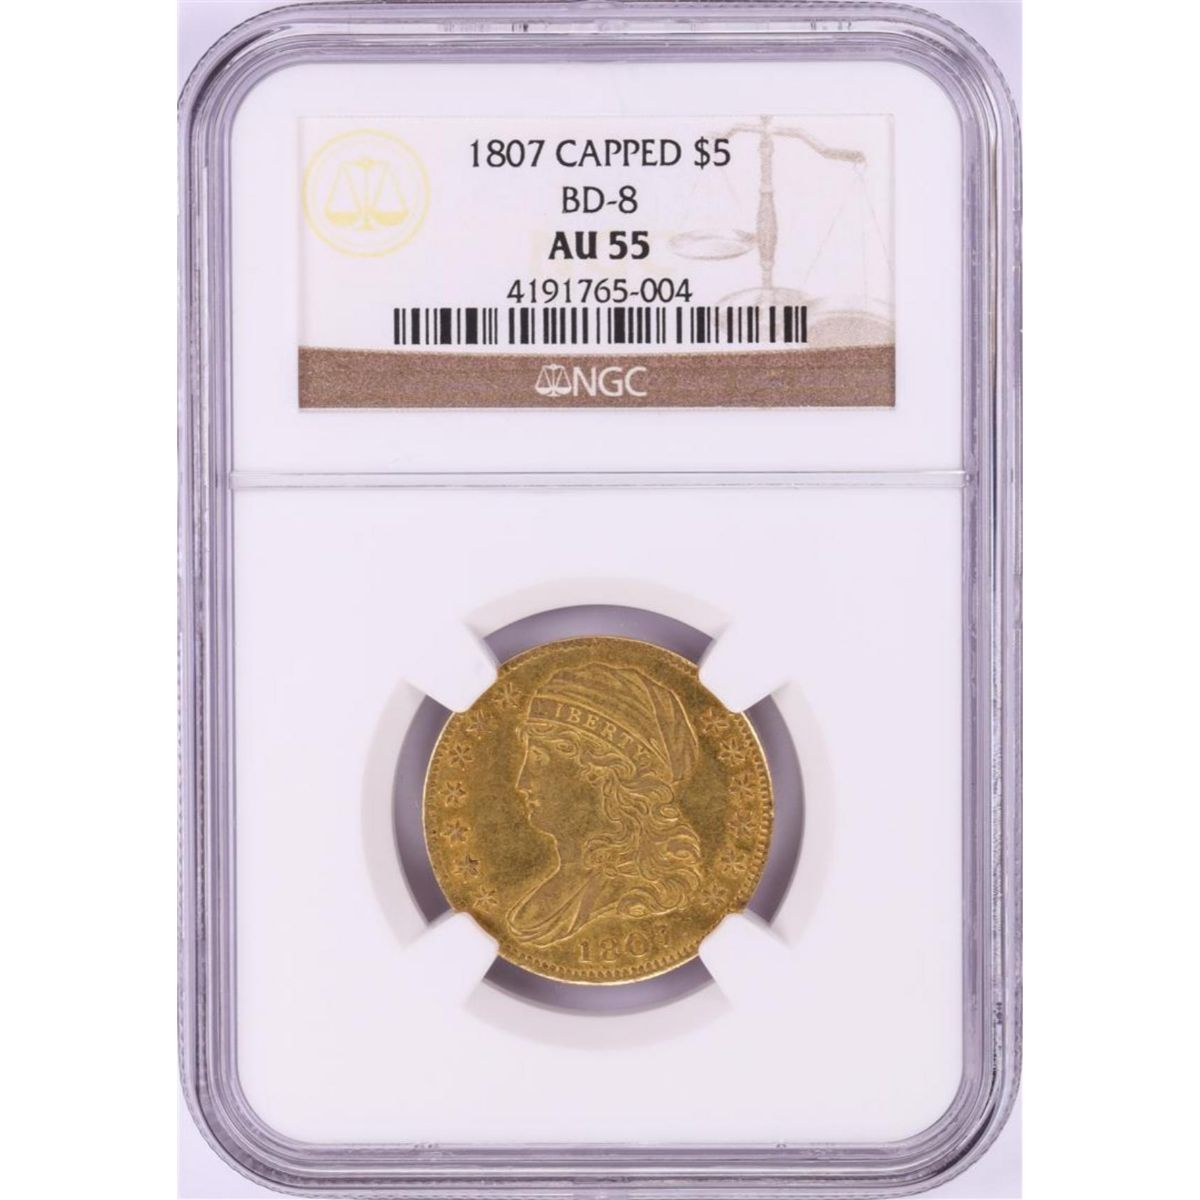 BK Auctions – Banknotes, Artwork, Gold Coins, & More!